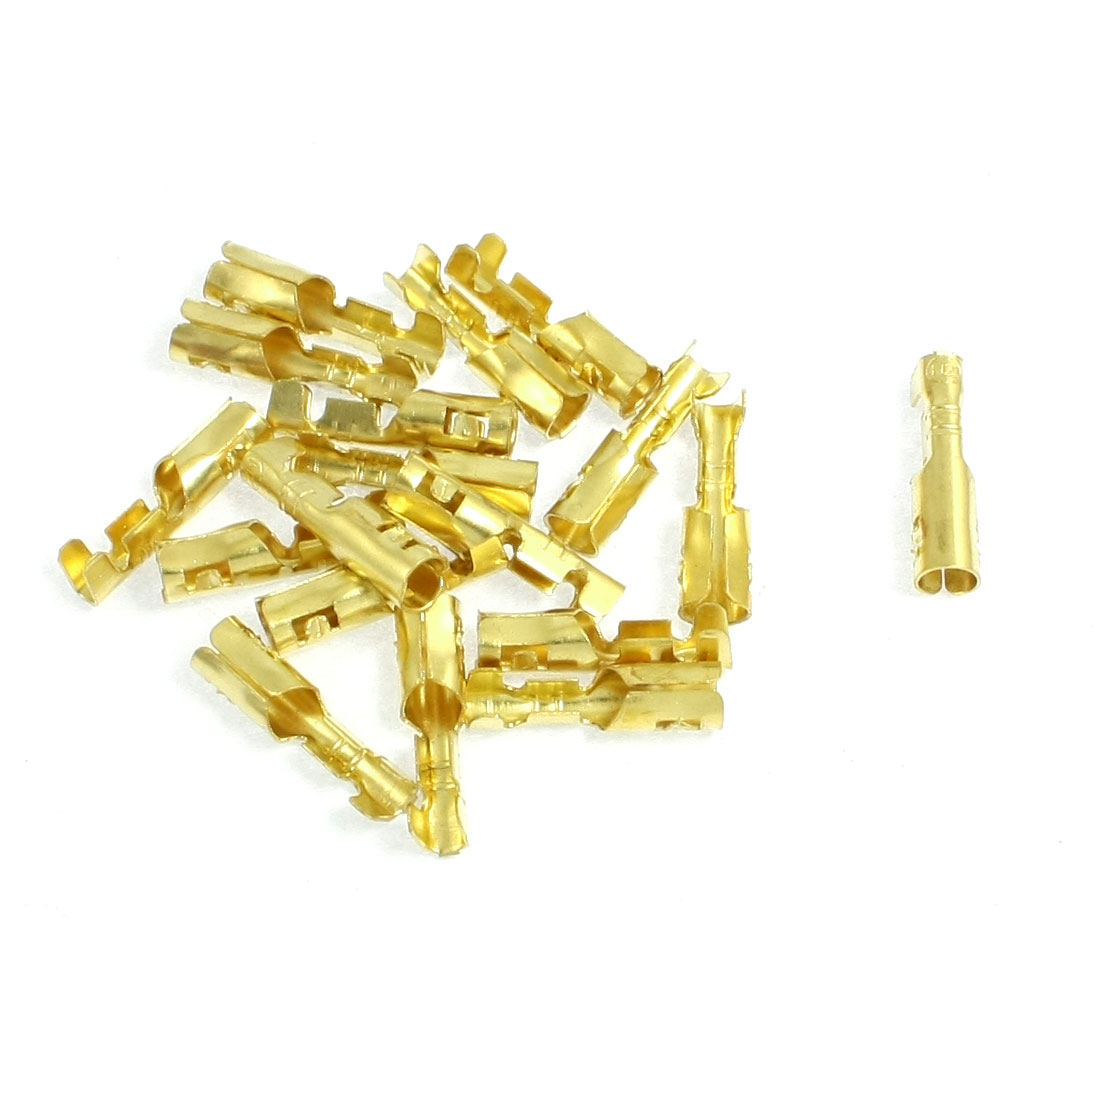 18 Pcs 3mm Diameter Wire Brass Female Crimp Terminal Connectors 4mm